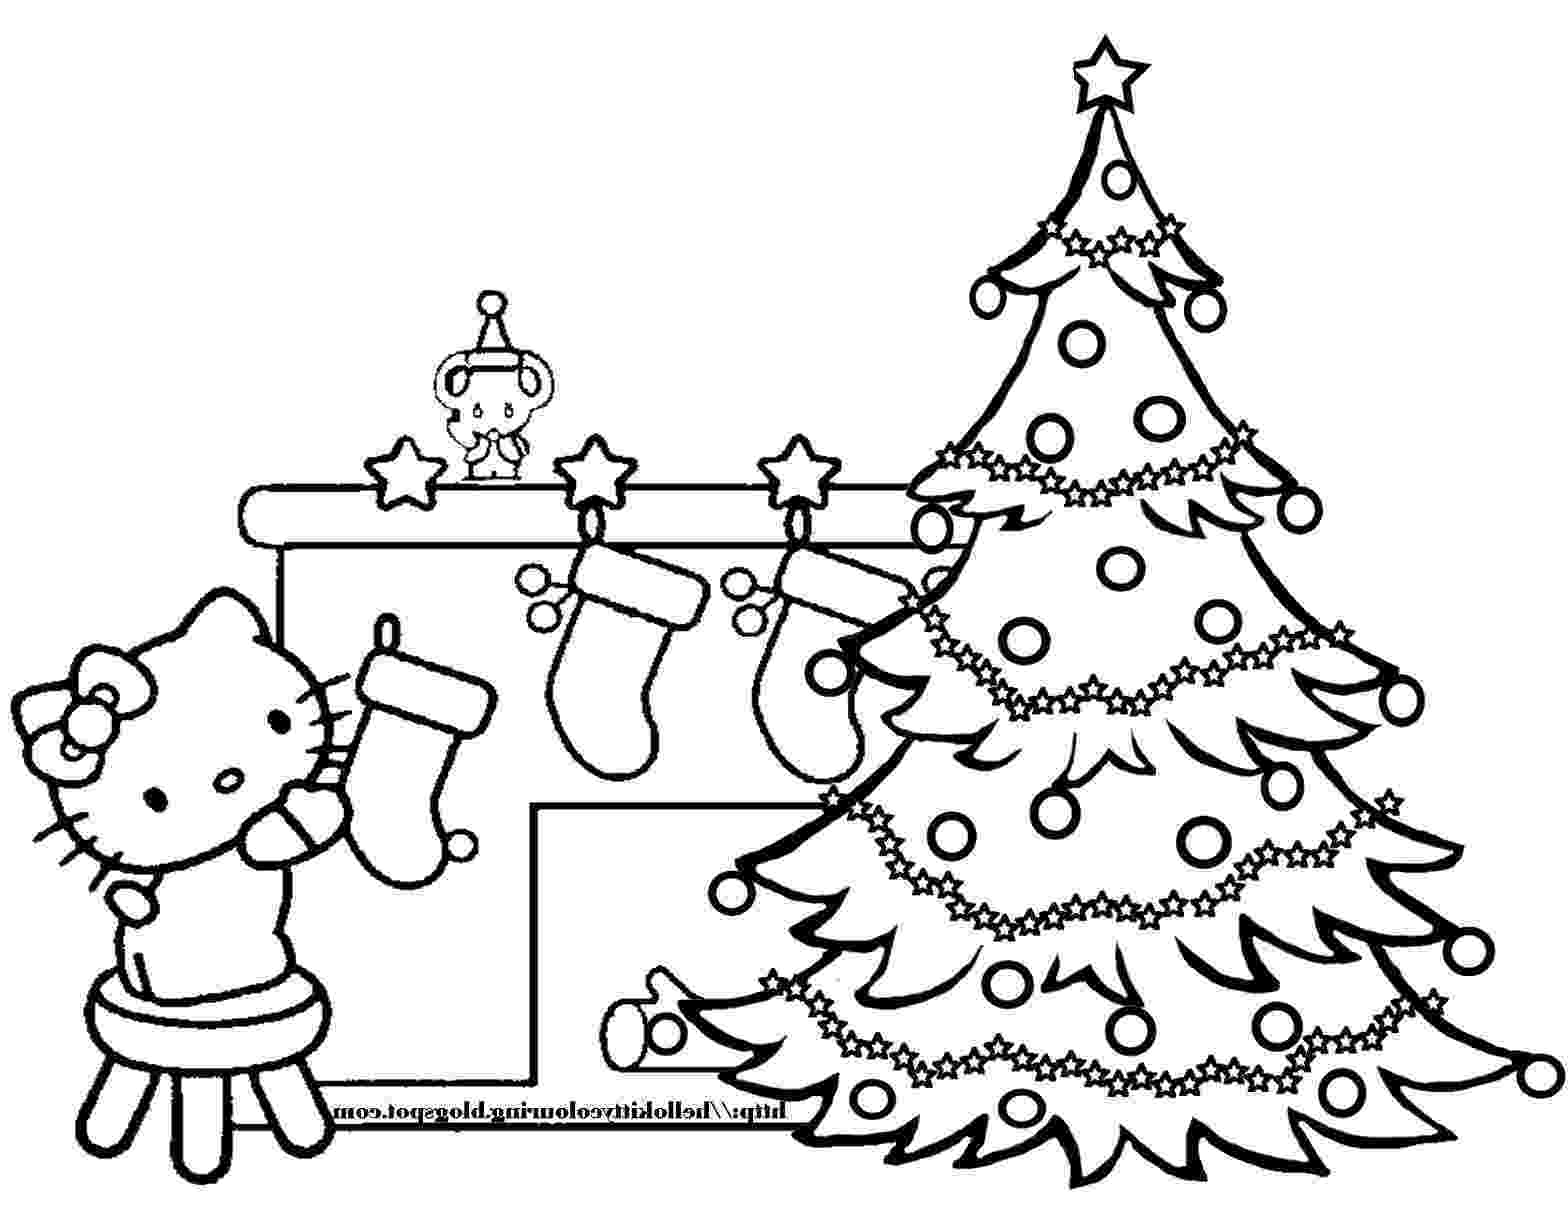 colouring pages christmas tree christmas tree coloring pages free printable pictures pages colouring christmas tree